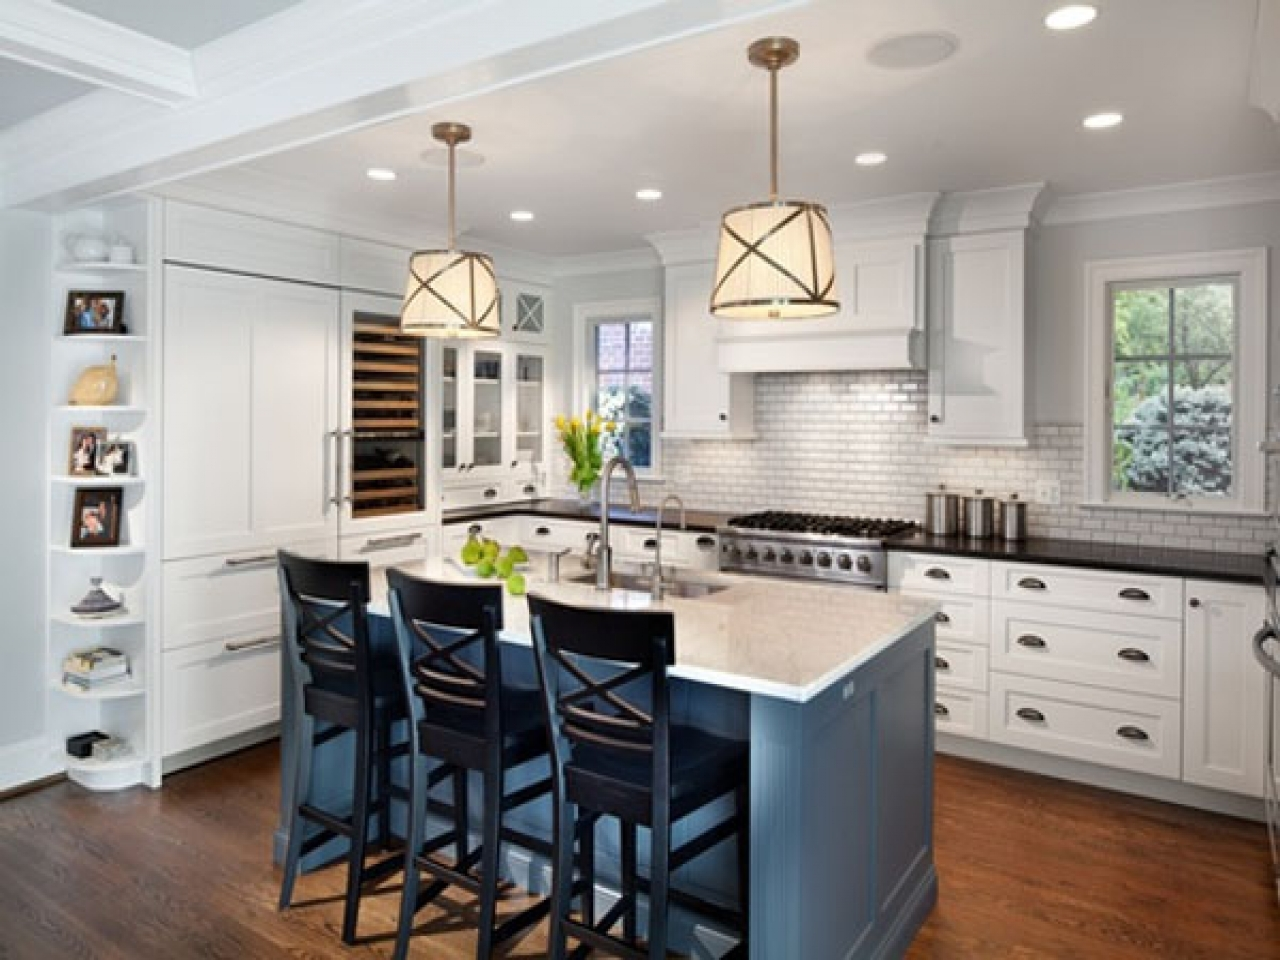 Dining room renovation ideas blue gray white kitchen with